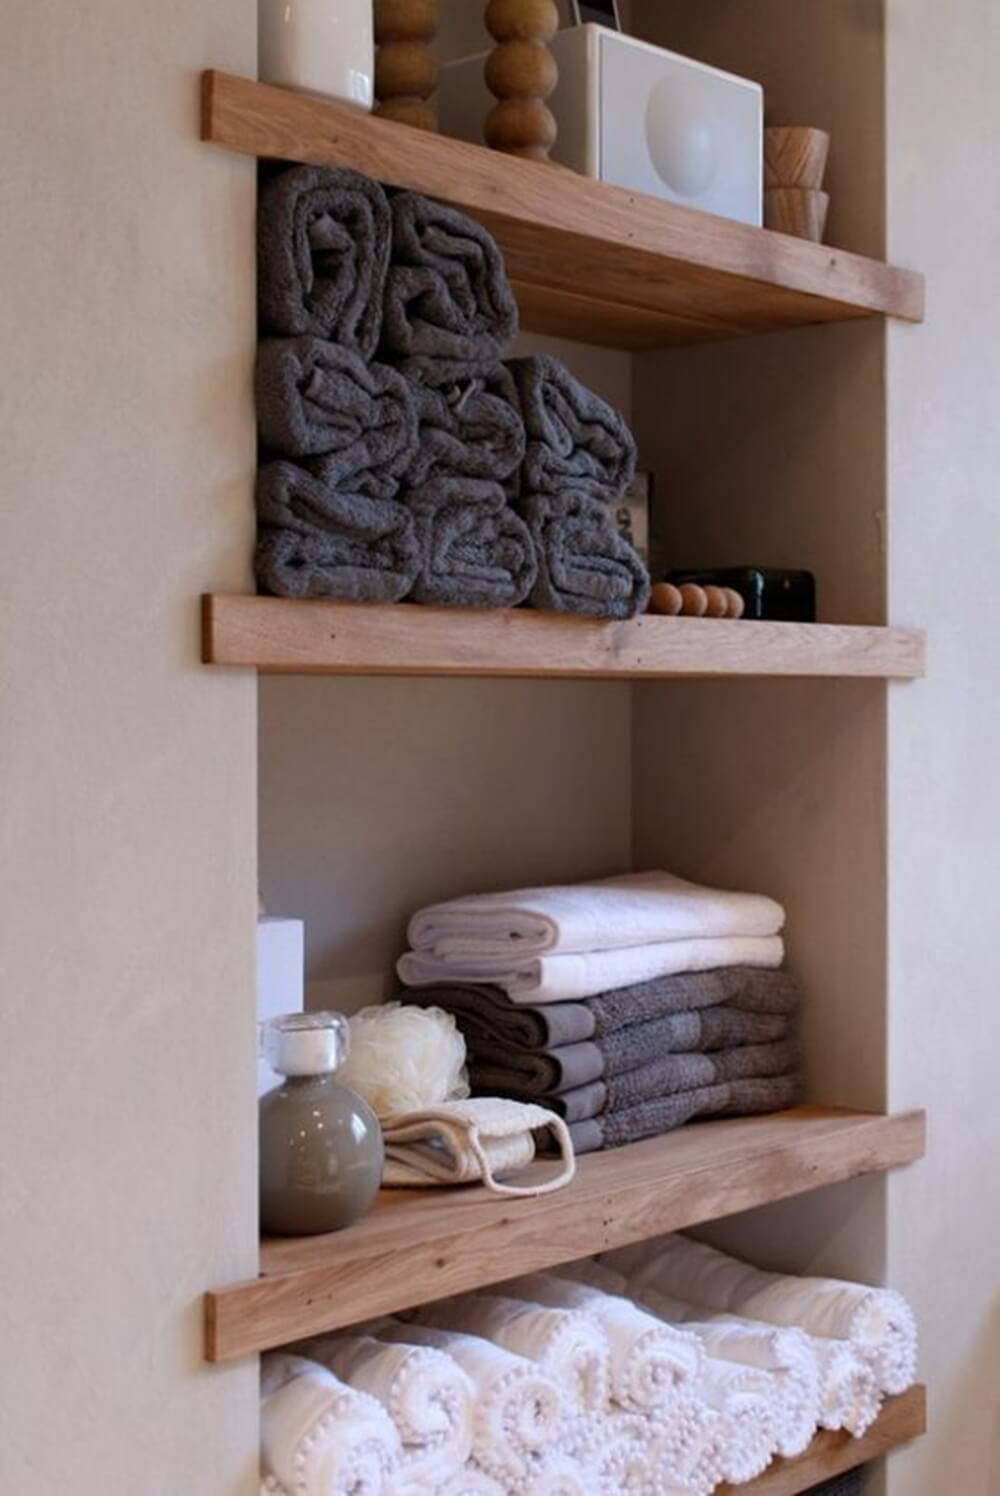 Built-in Natural Wood Shelving